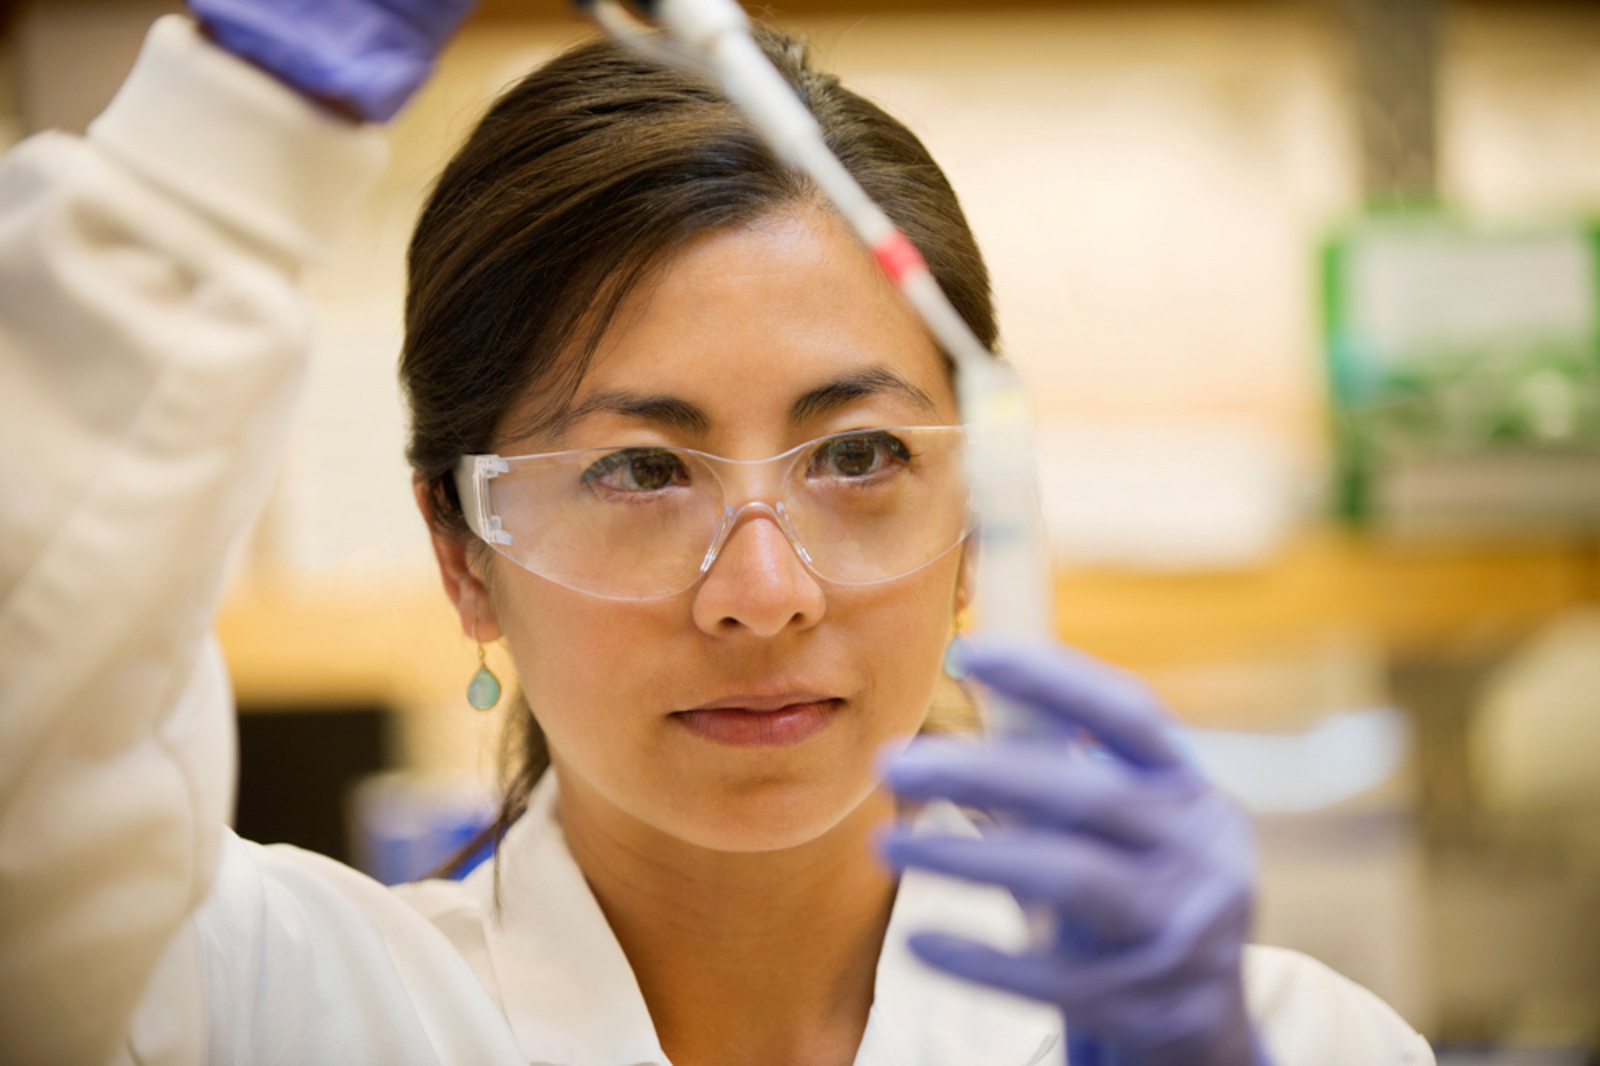 Female lab tech working on test tube, wearing goggles